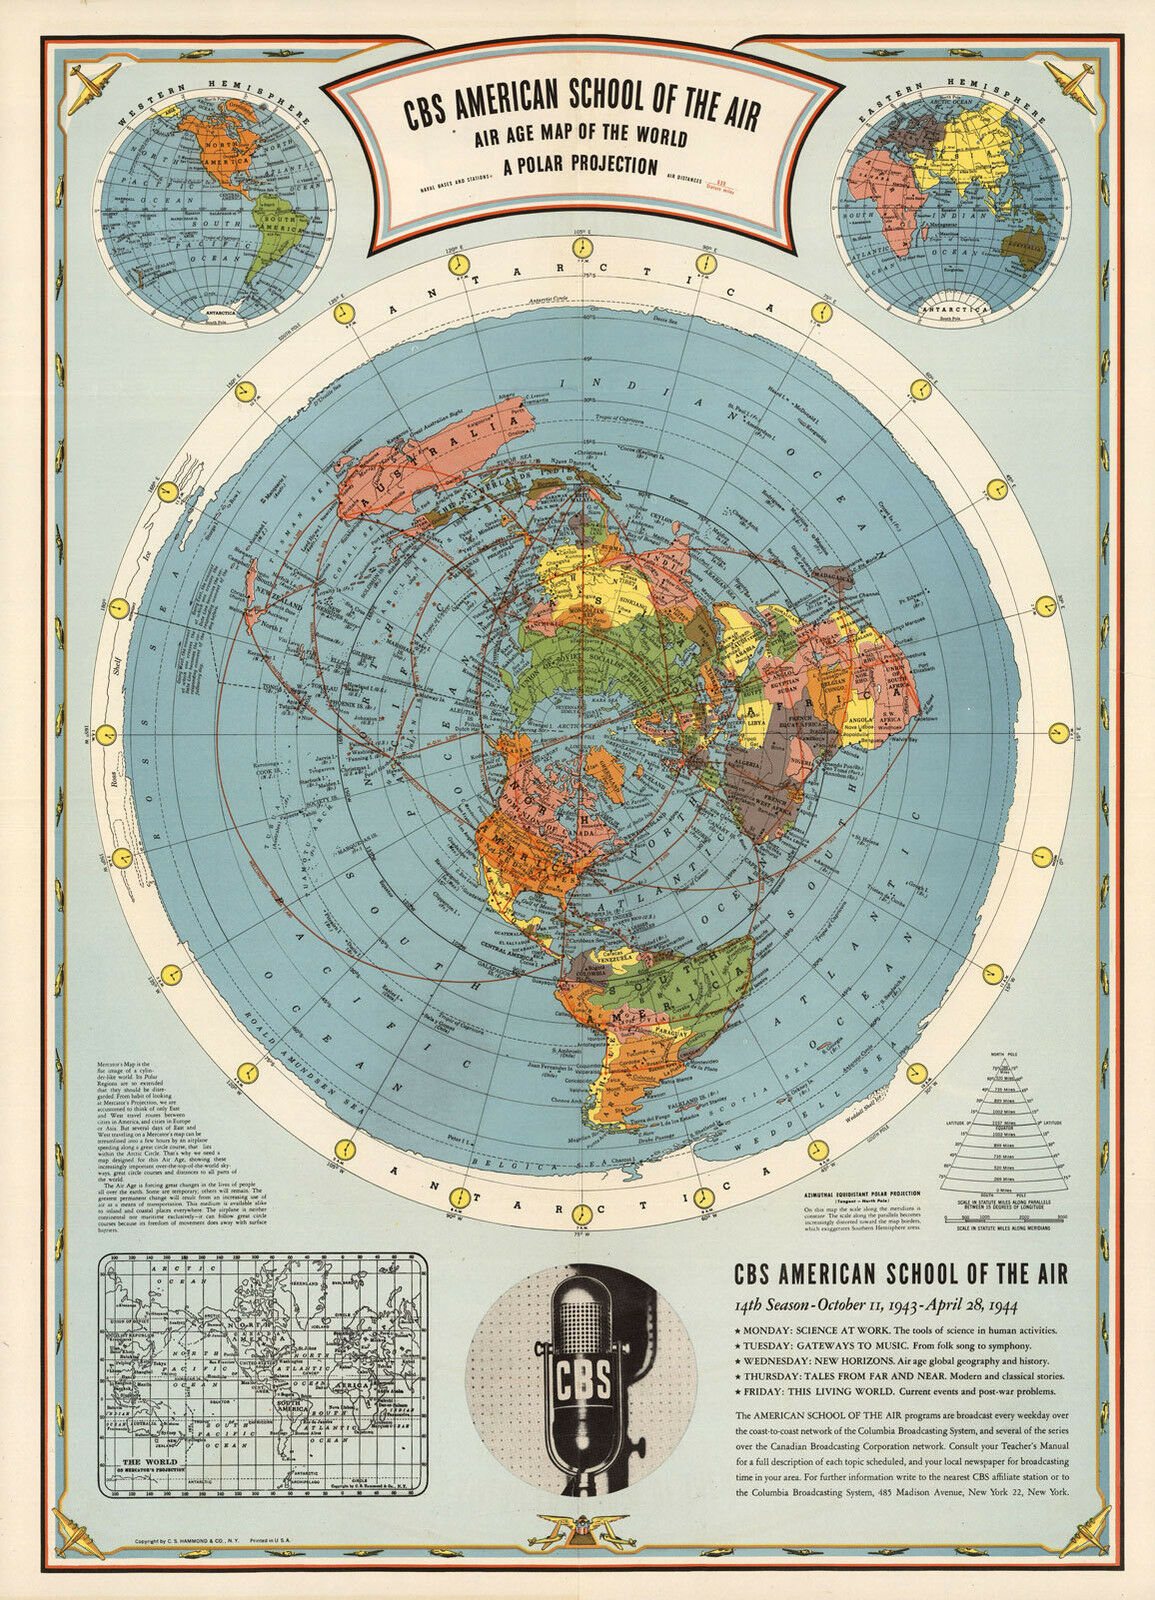 1944 flat earth air age map of the world azimuthal equidistant polar 1944 flat earth air age map of the world azimuthal equidistant polar projection 1 of 2free shipping gumiabroncs Image collections